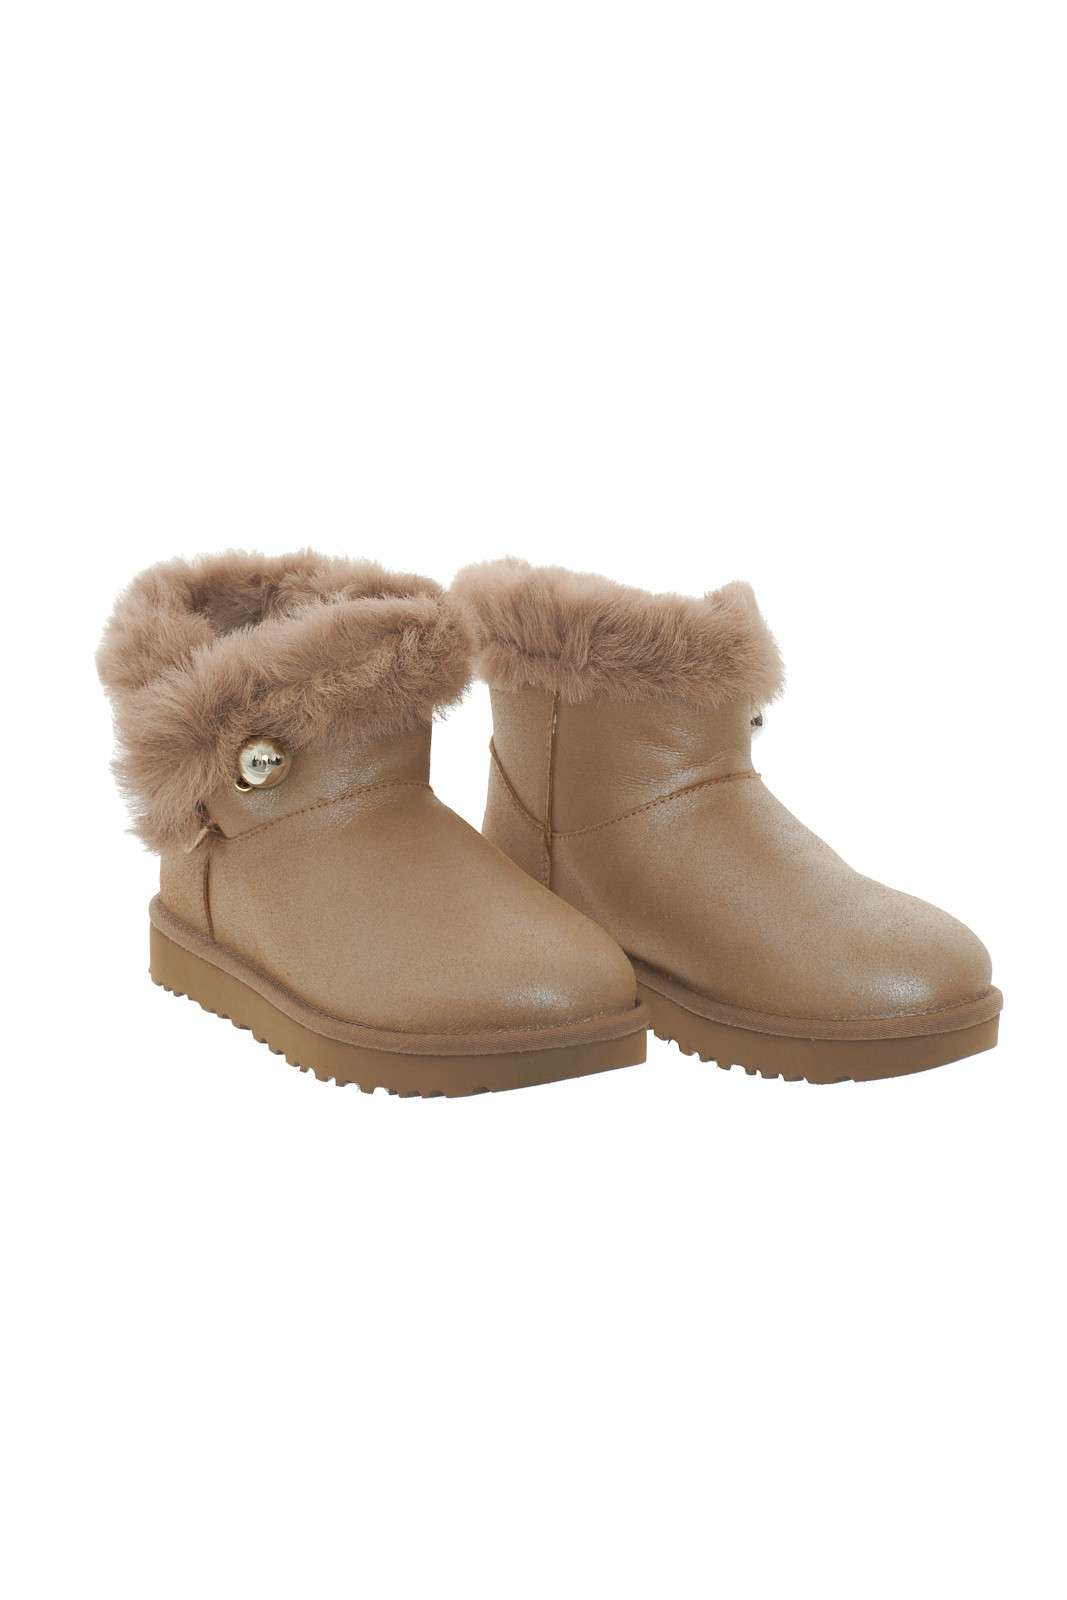 https://www.parmax.com/media/catalog/product/a/i/AI-outlet_parmax-scarponcini-donna-Ugg-1103761-B.jpg